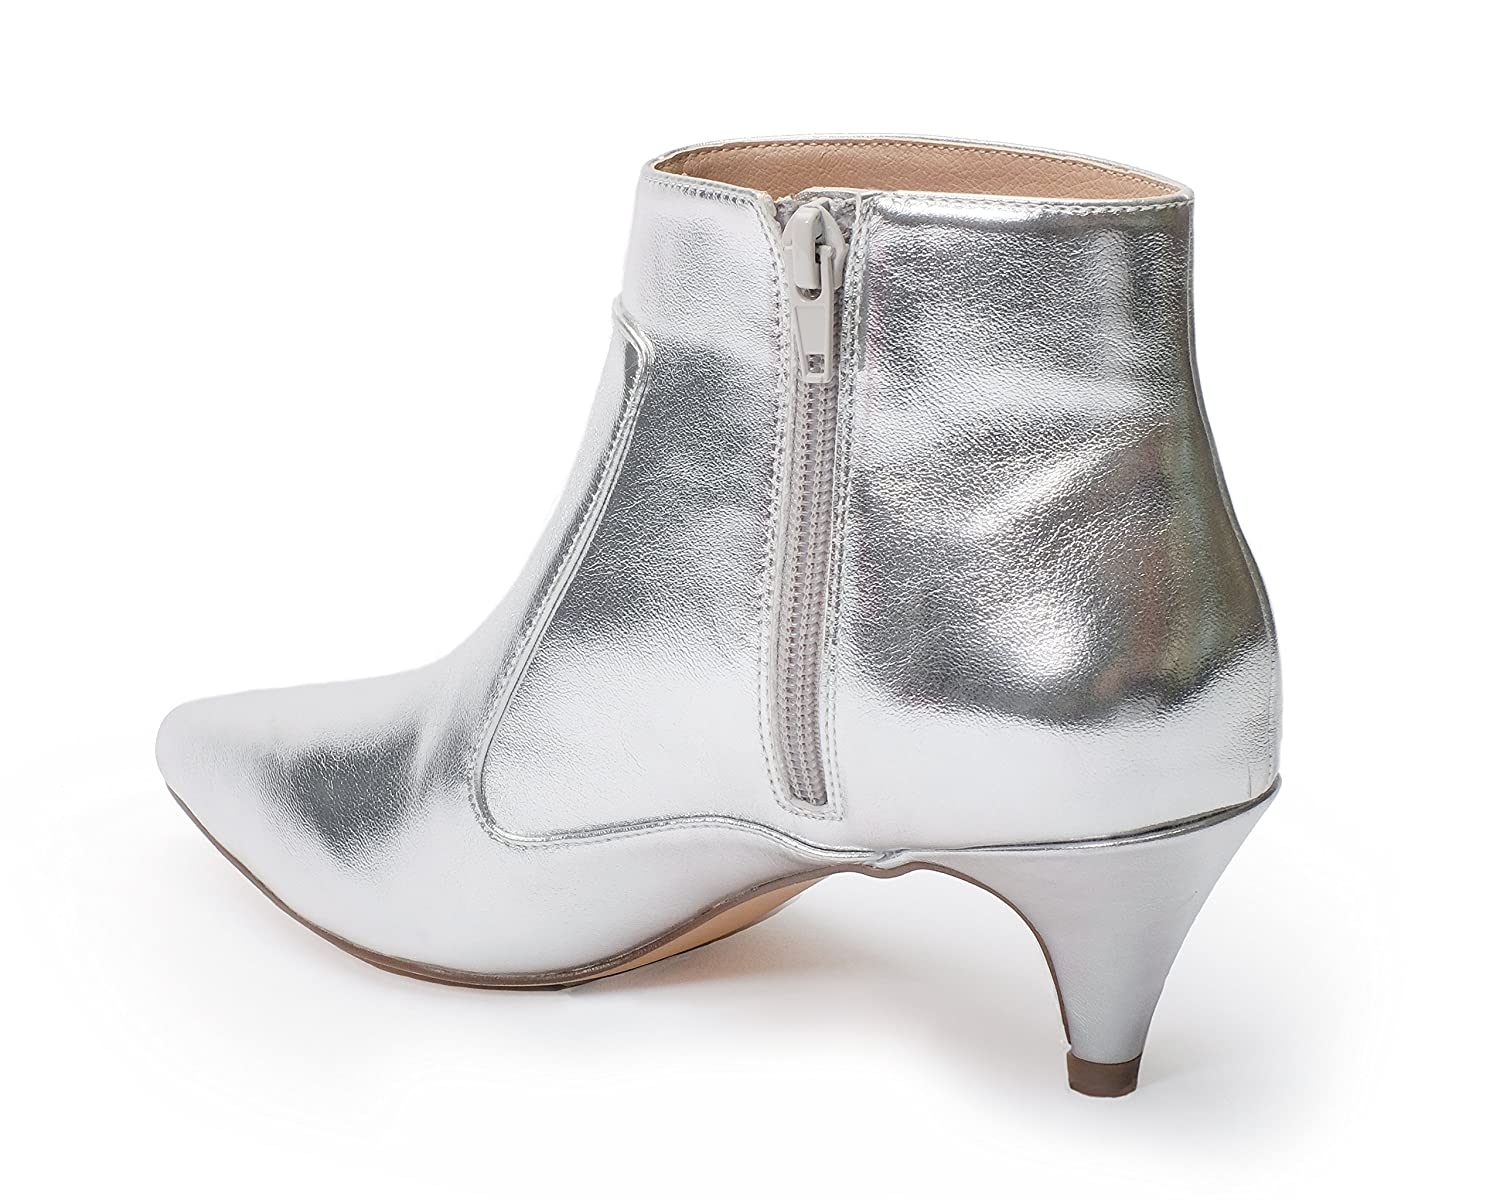 Jane and the Shoe Women's Kizzy Kitten Heel Ankle Boot B07DG1YDCX 7 M US|Silver